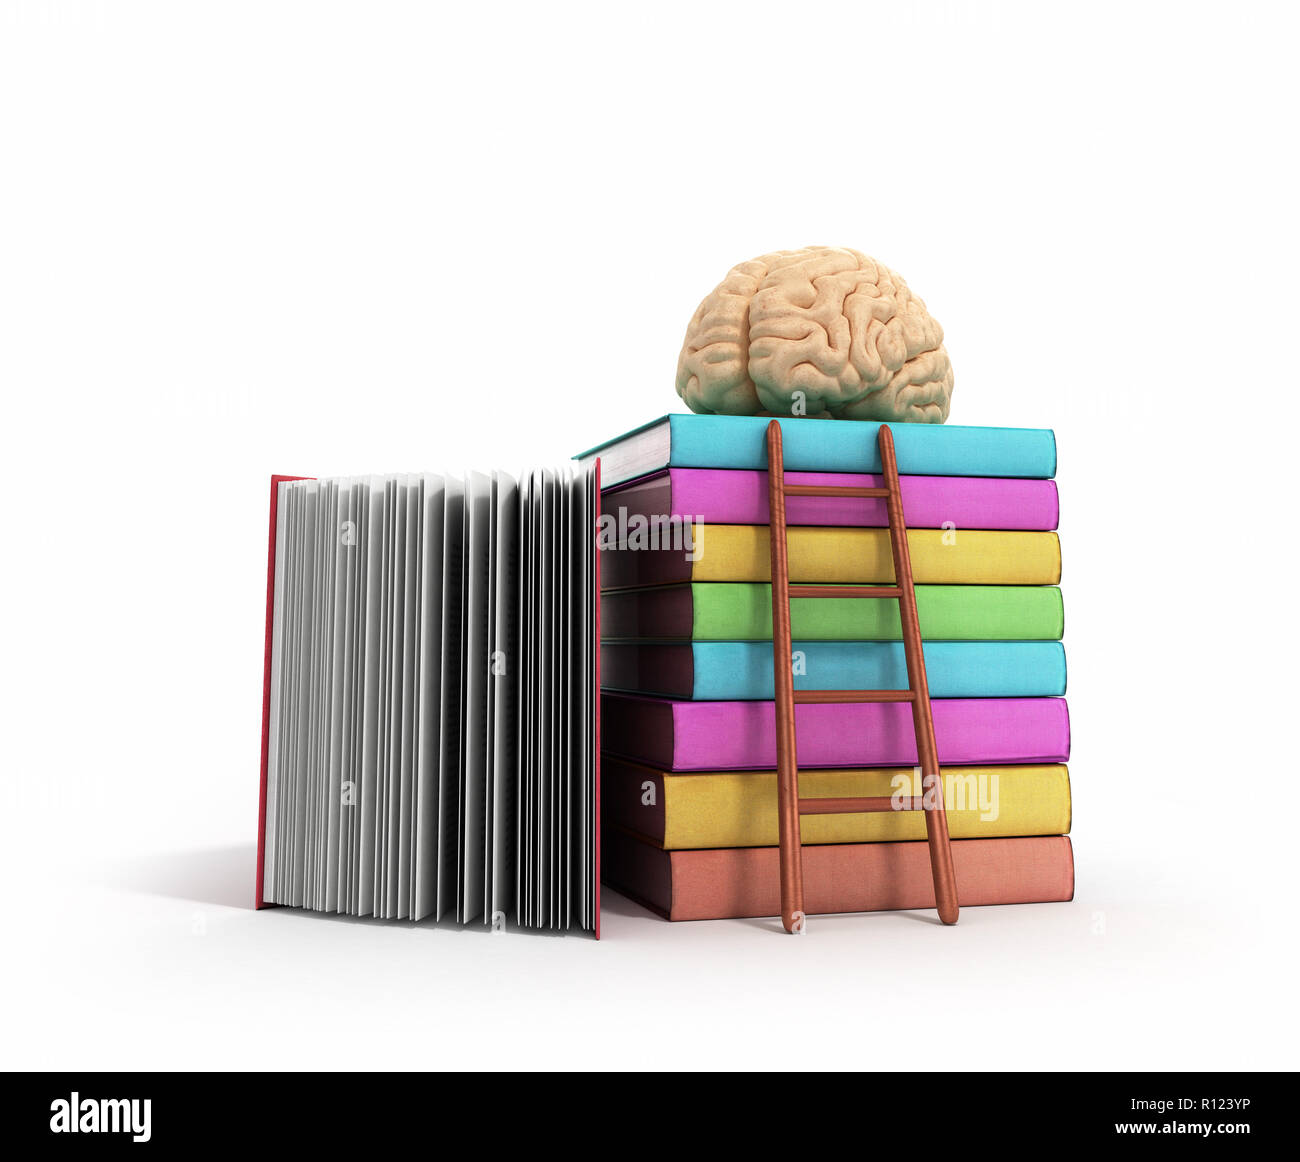 brain training concept lies on a pile of books and a wooden staircase next to them 3d render on a white background - Stock Image